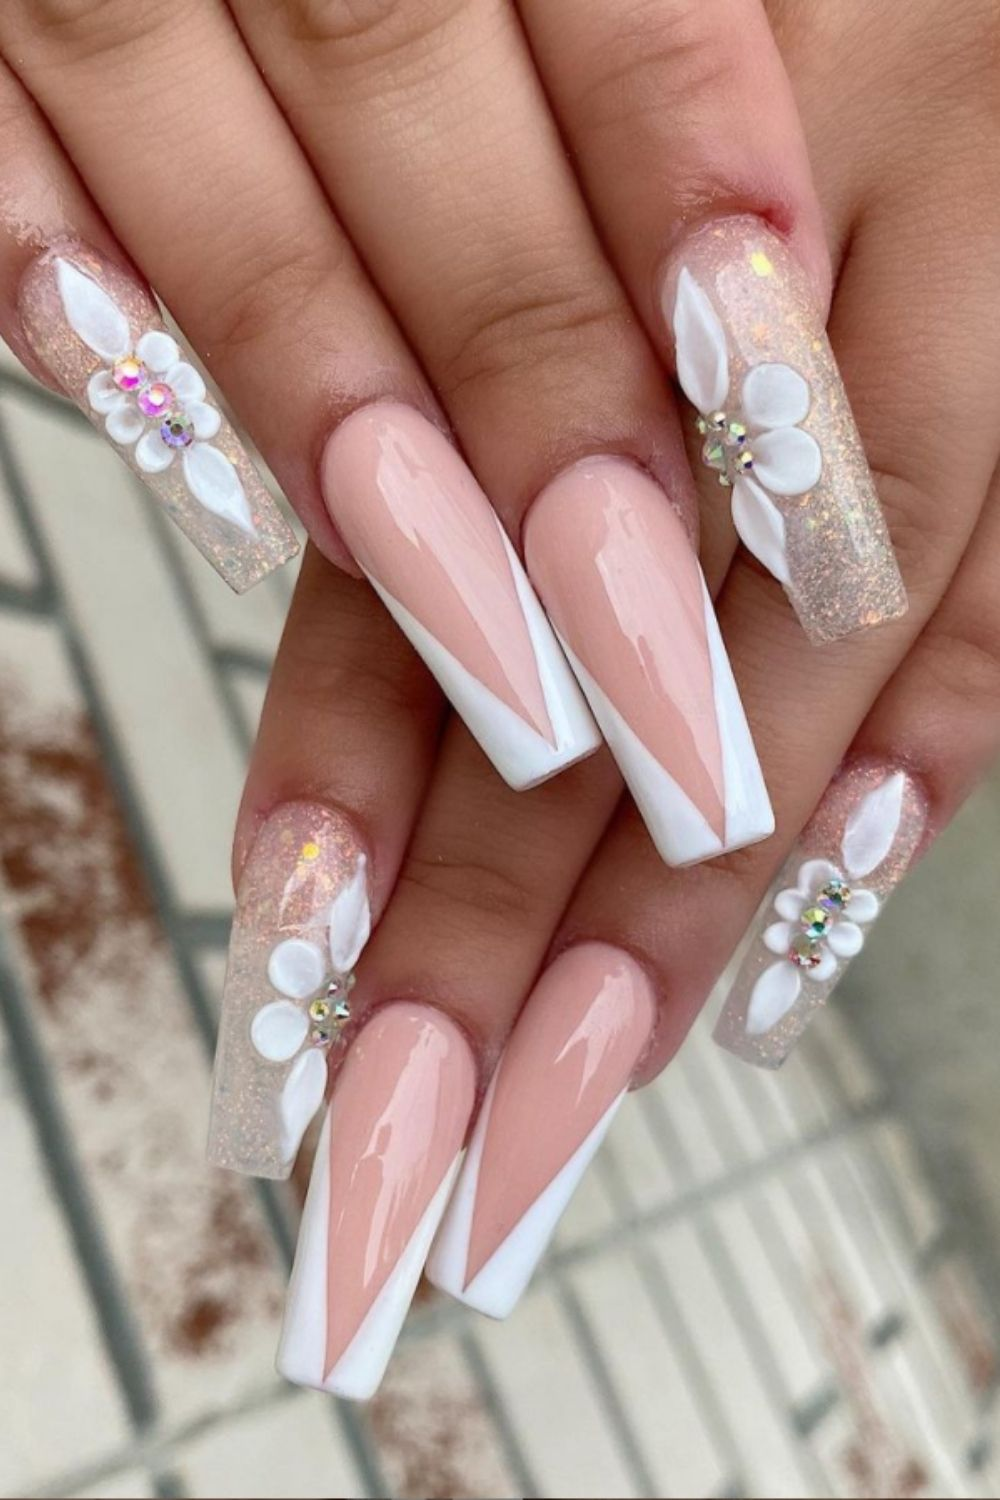 Pink and white coffin nail white 3D flowers